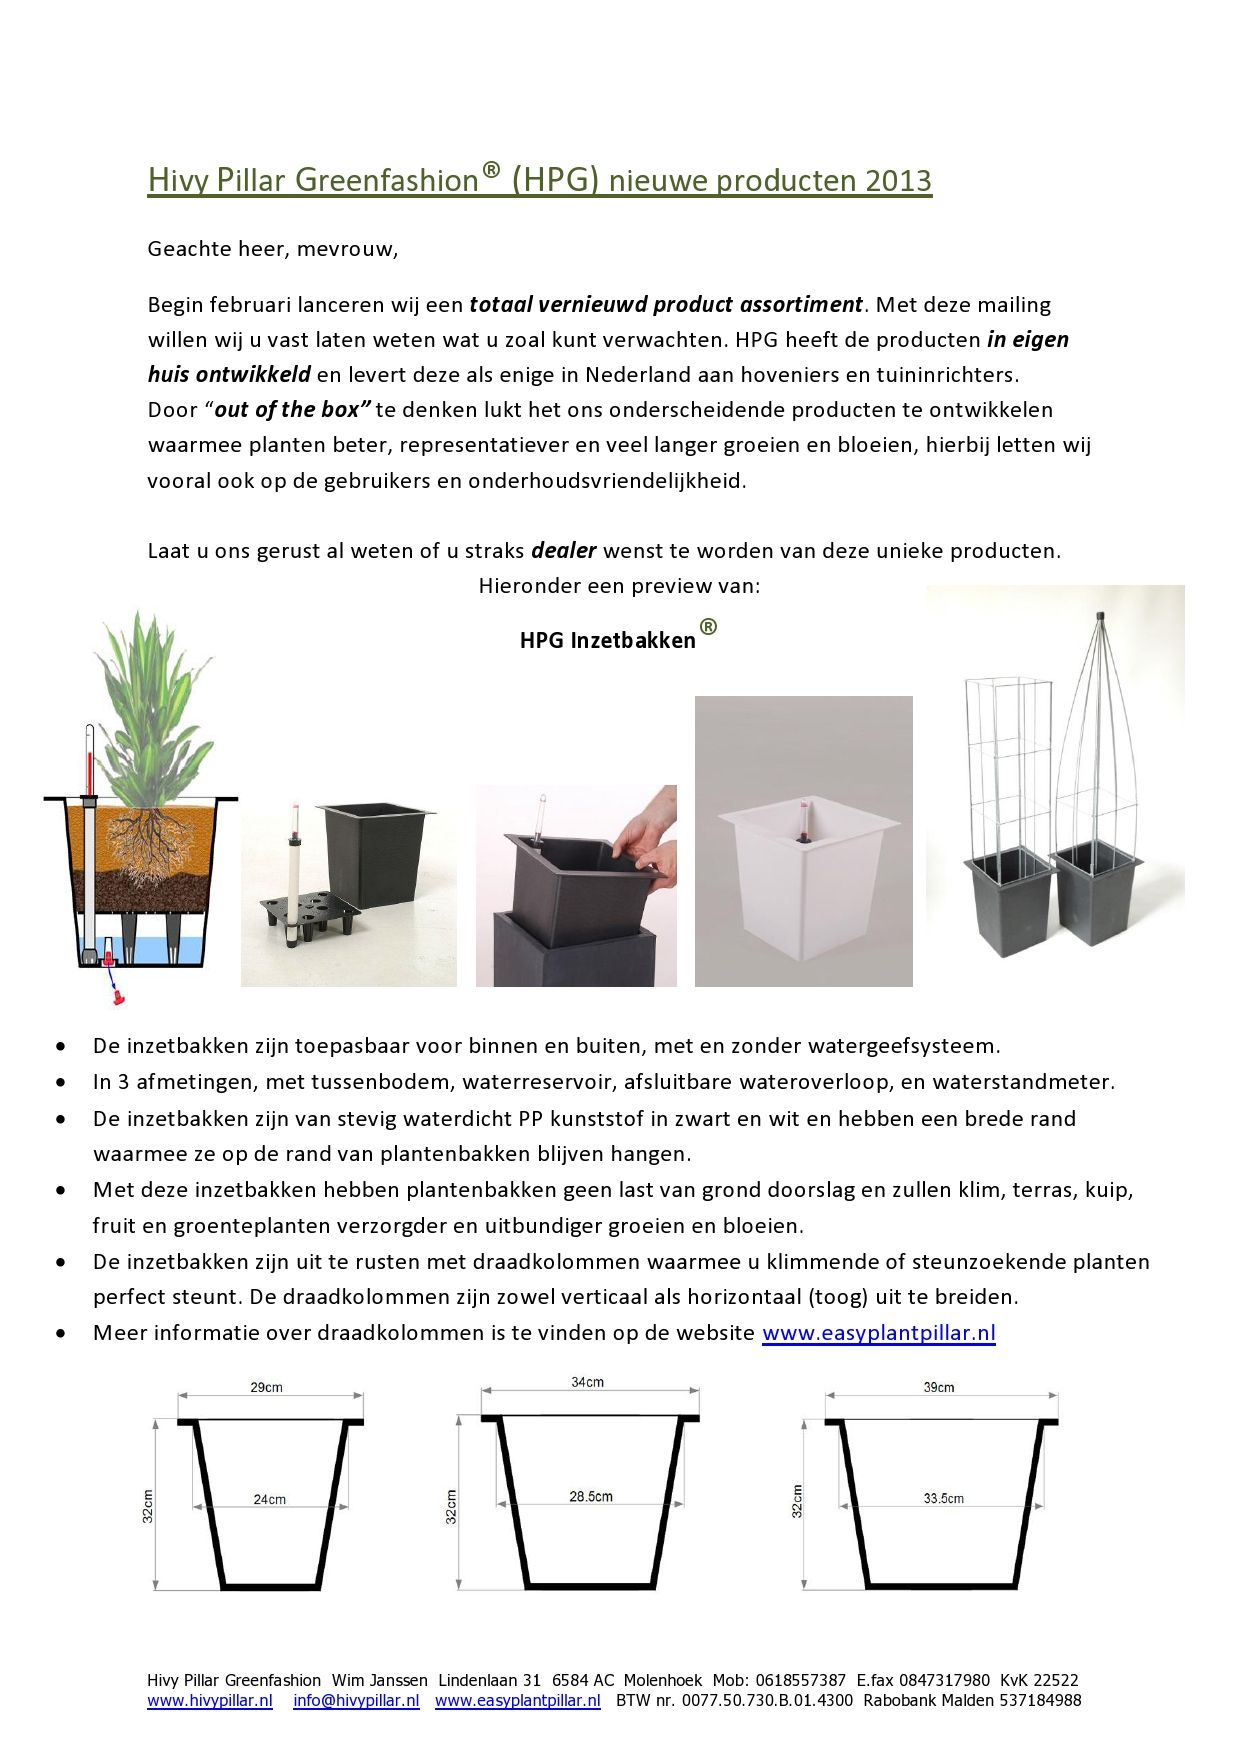 Planters With Self Watering System A Piramide And Square Wire Case Planter Wiring Diagram Colmn New By Hivy Pillar Greenfashion Hpg 2013 Hivypillarnl